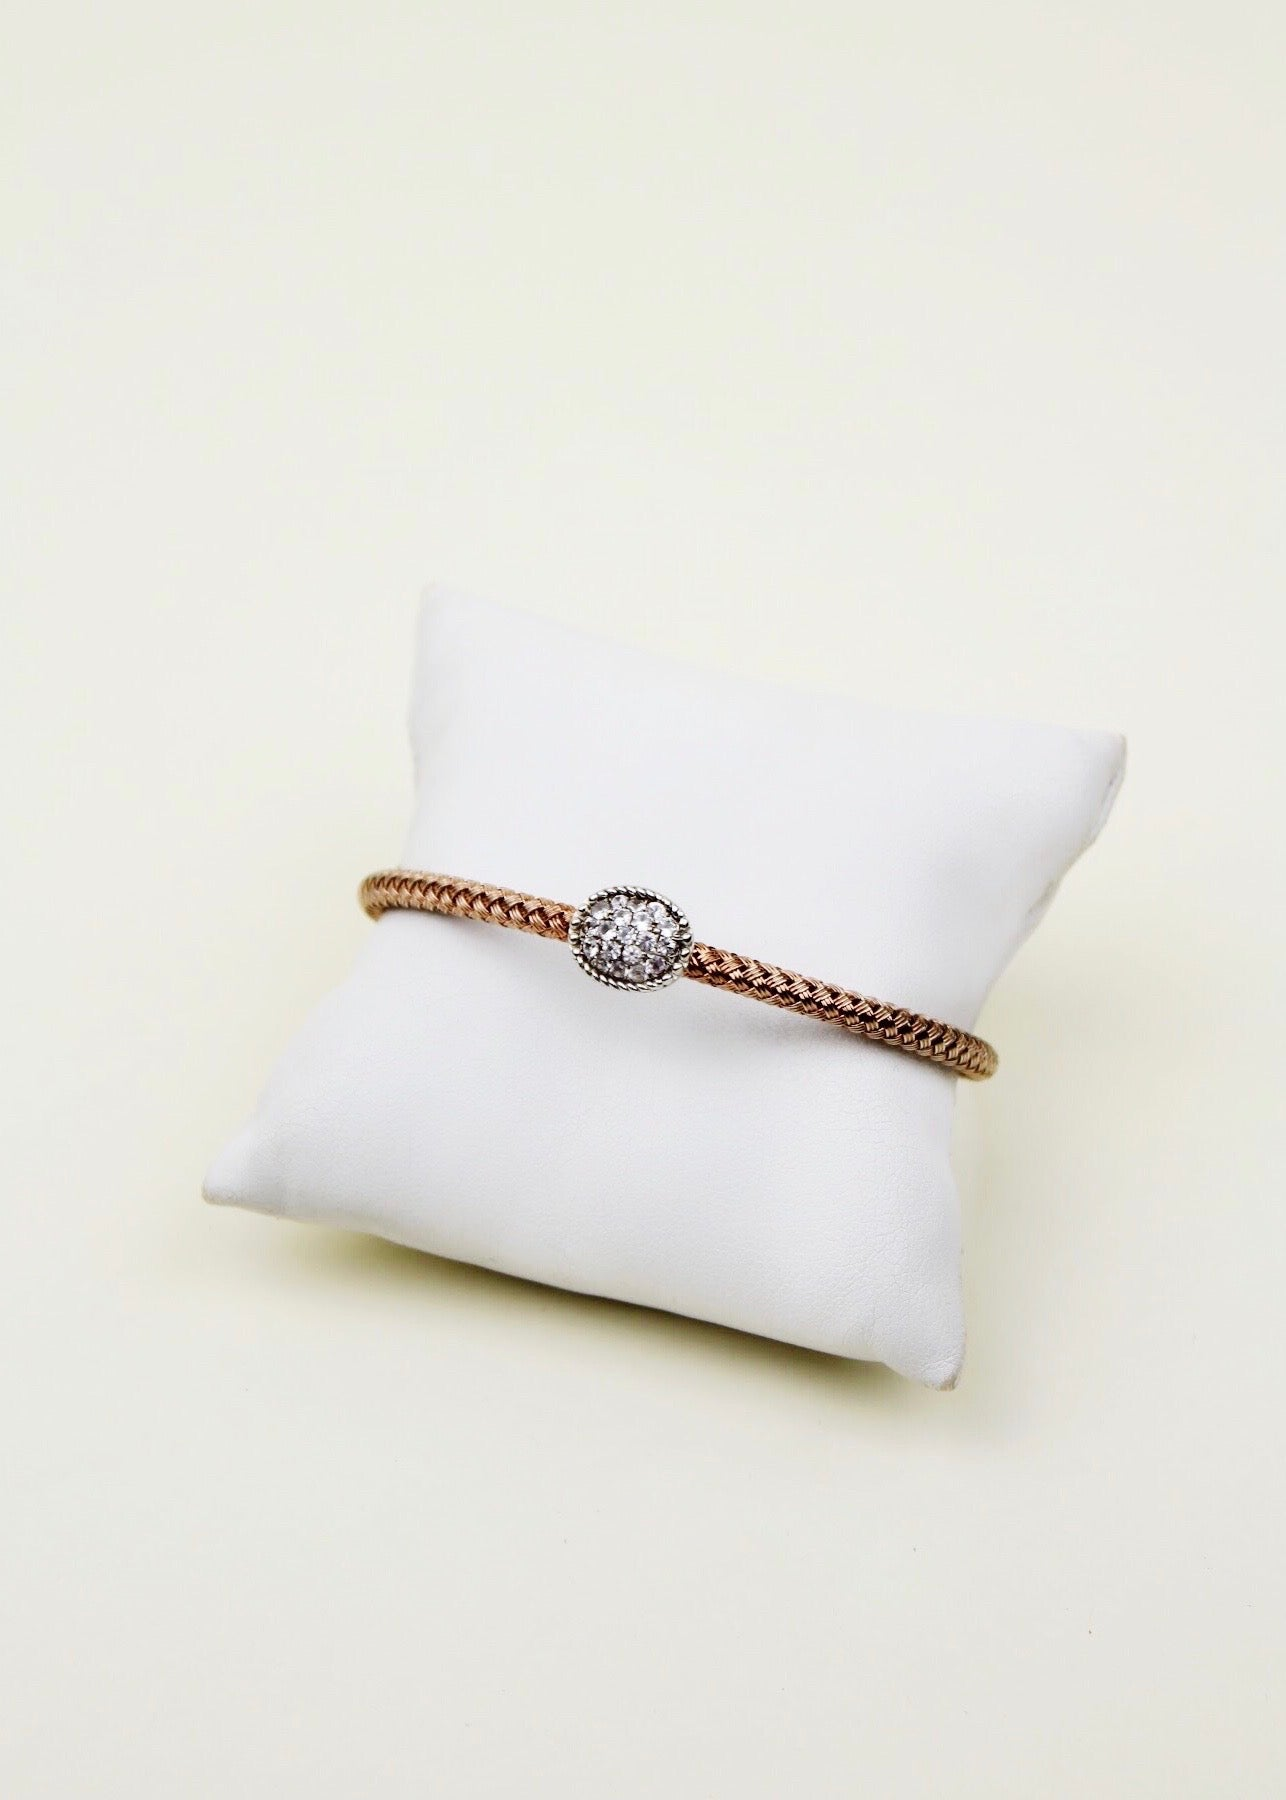 Rose Braided Cuff Bracelet